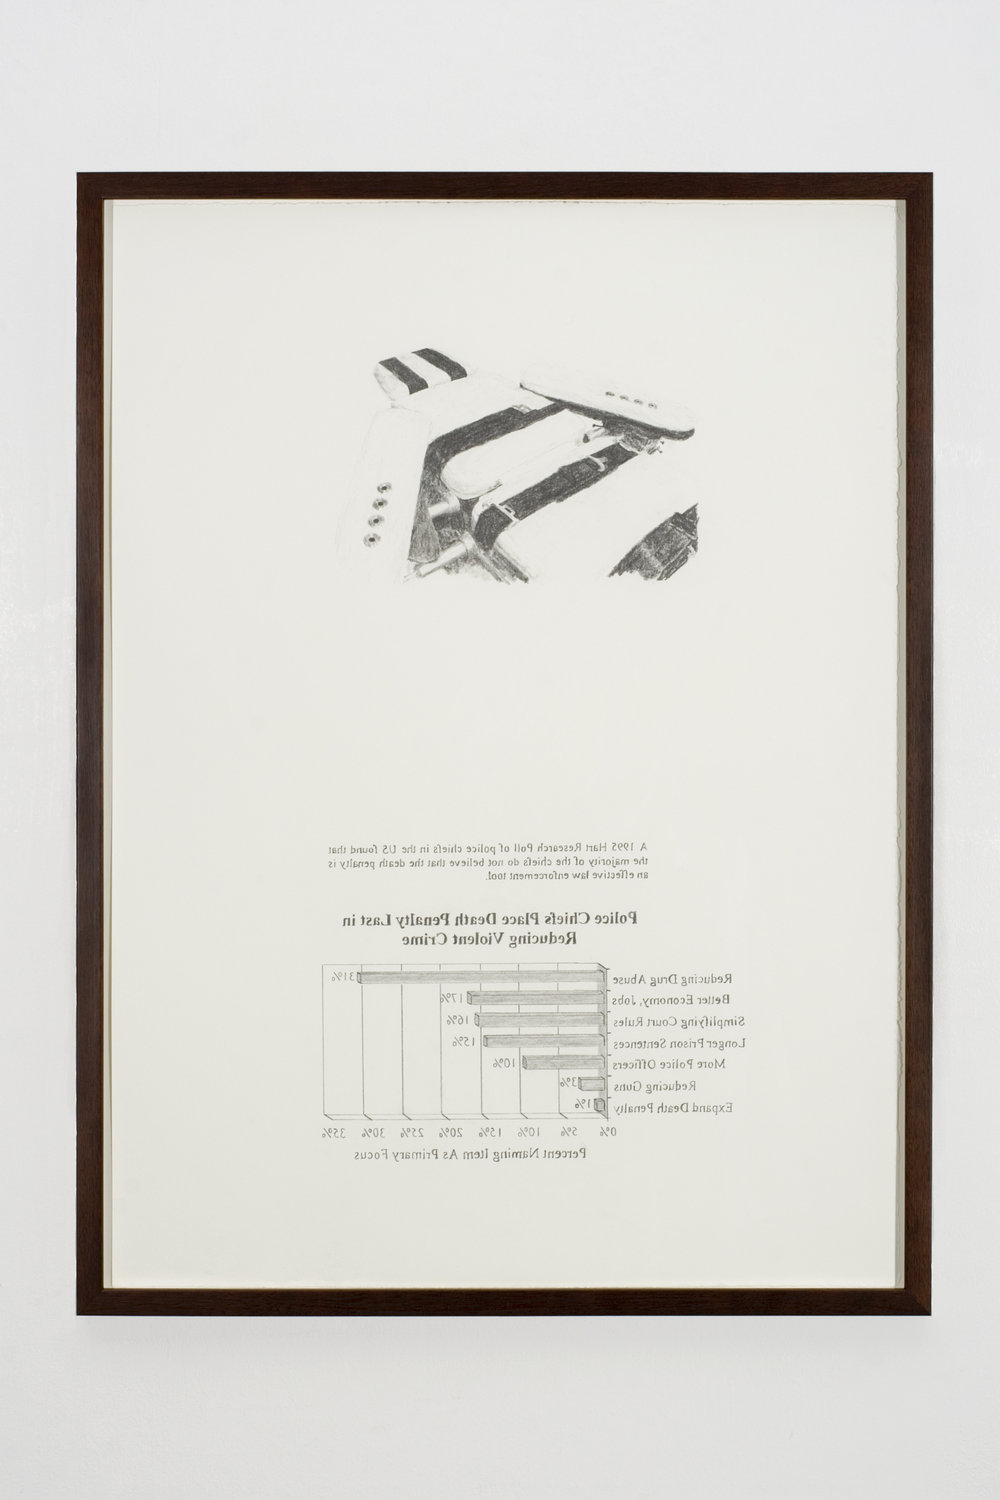 Death Penalty Last, 2008 graphite on paper 81 x 61 cm - 32 x 24 inches (framed)